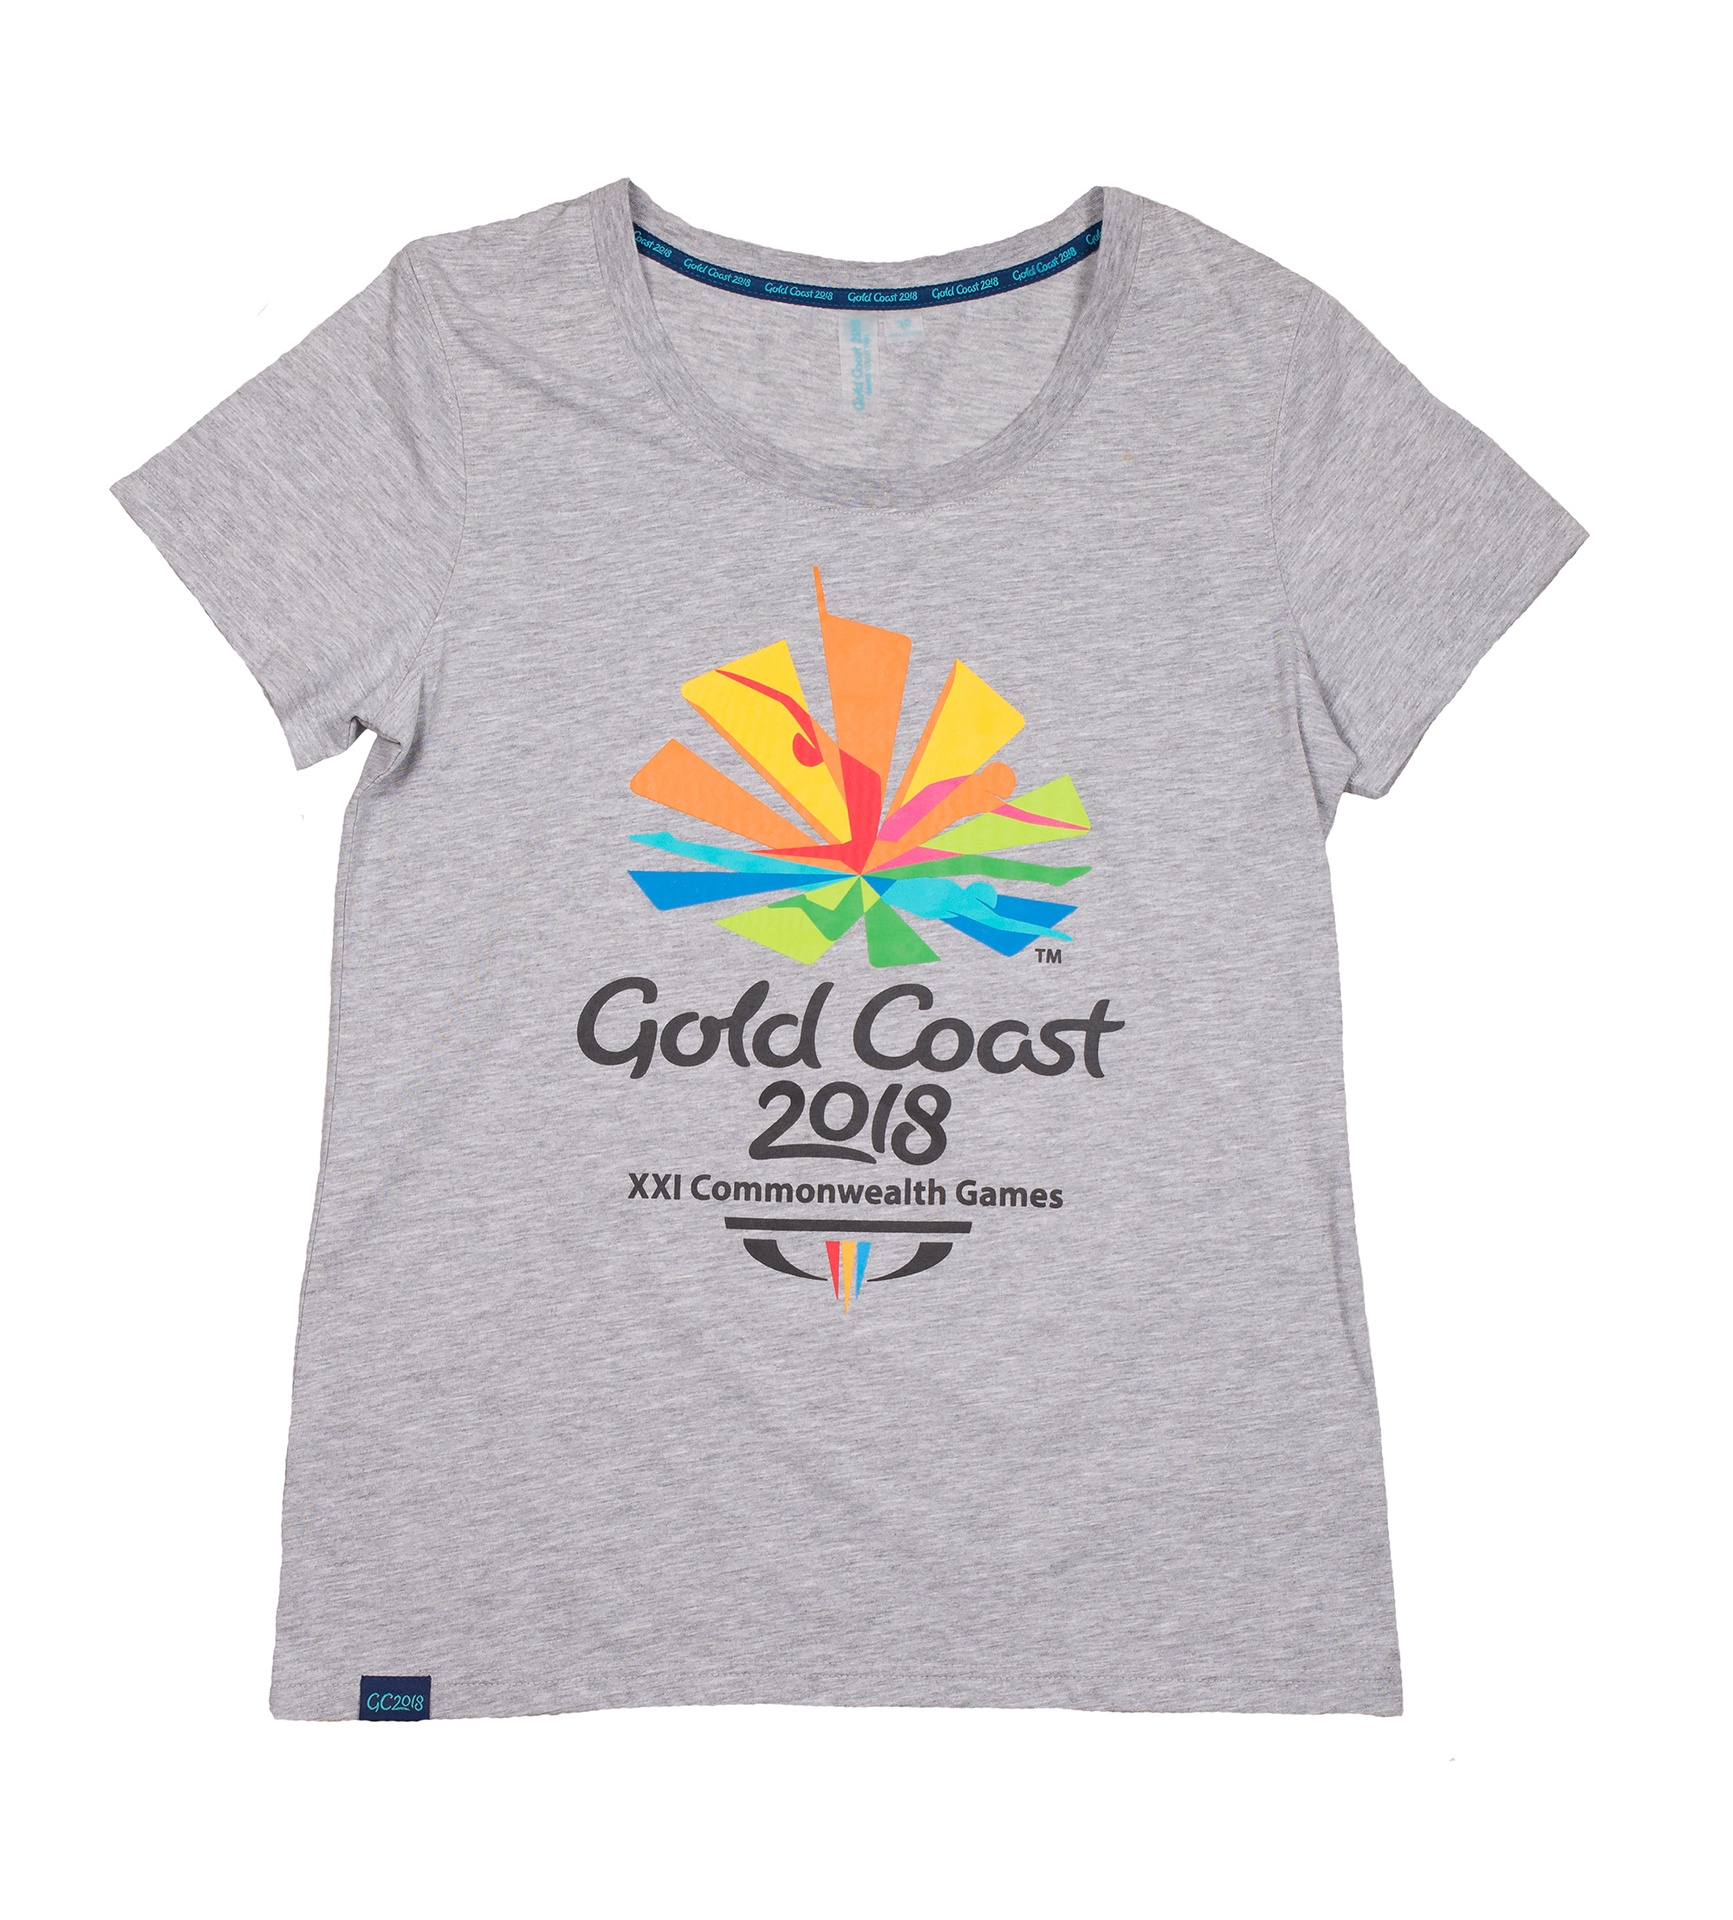 Gold Coast 2018 Women's Emblem T-Shirt